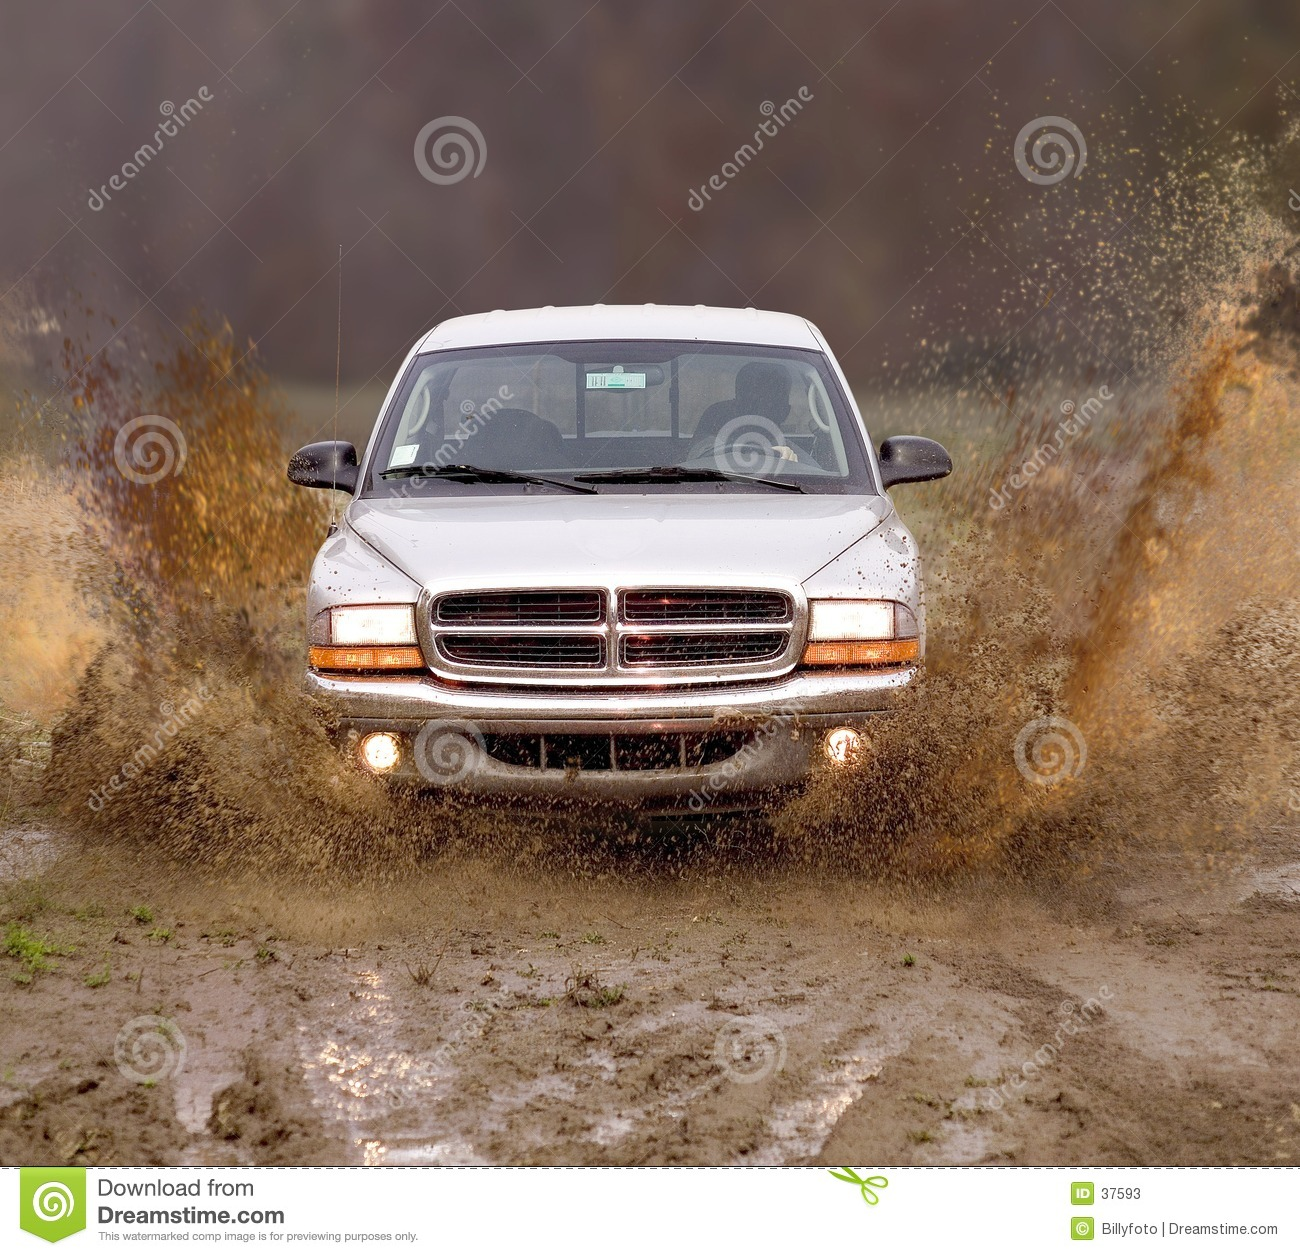 Truck in the mud